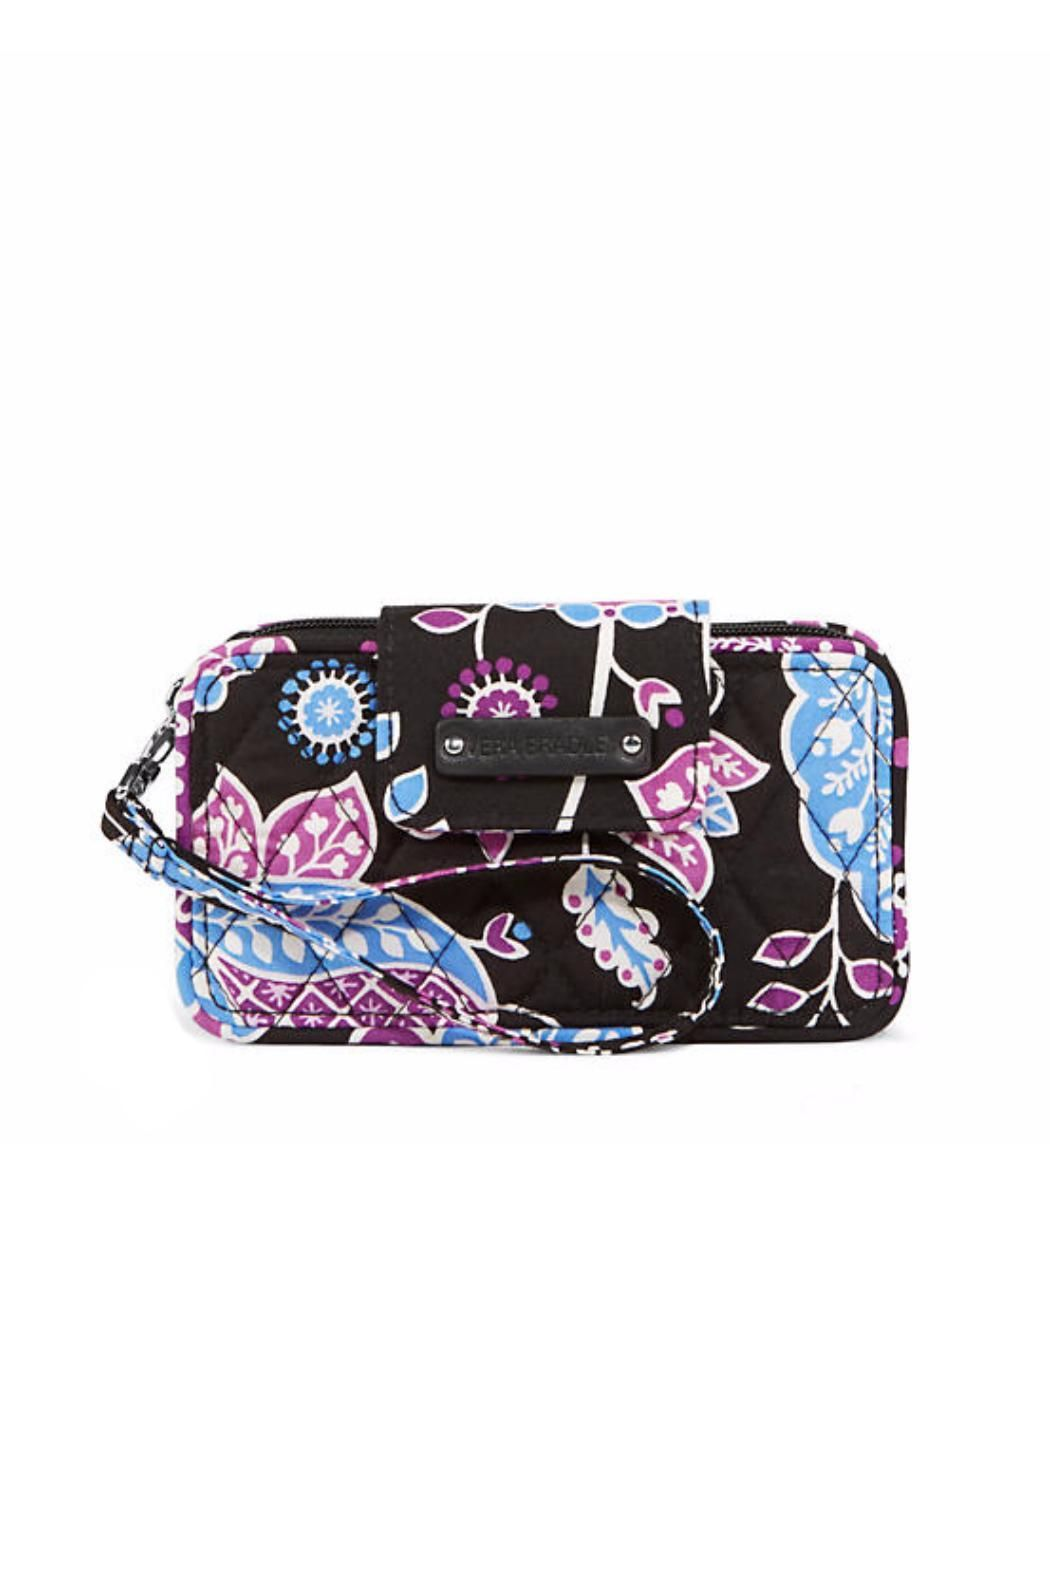 separation shoes fabb0 c2111 Our beloved all-in-one Smartphone Wristlet now holds an iPhone 6 ...